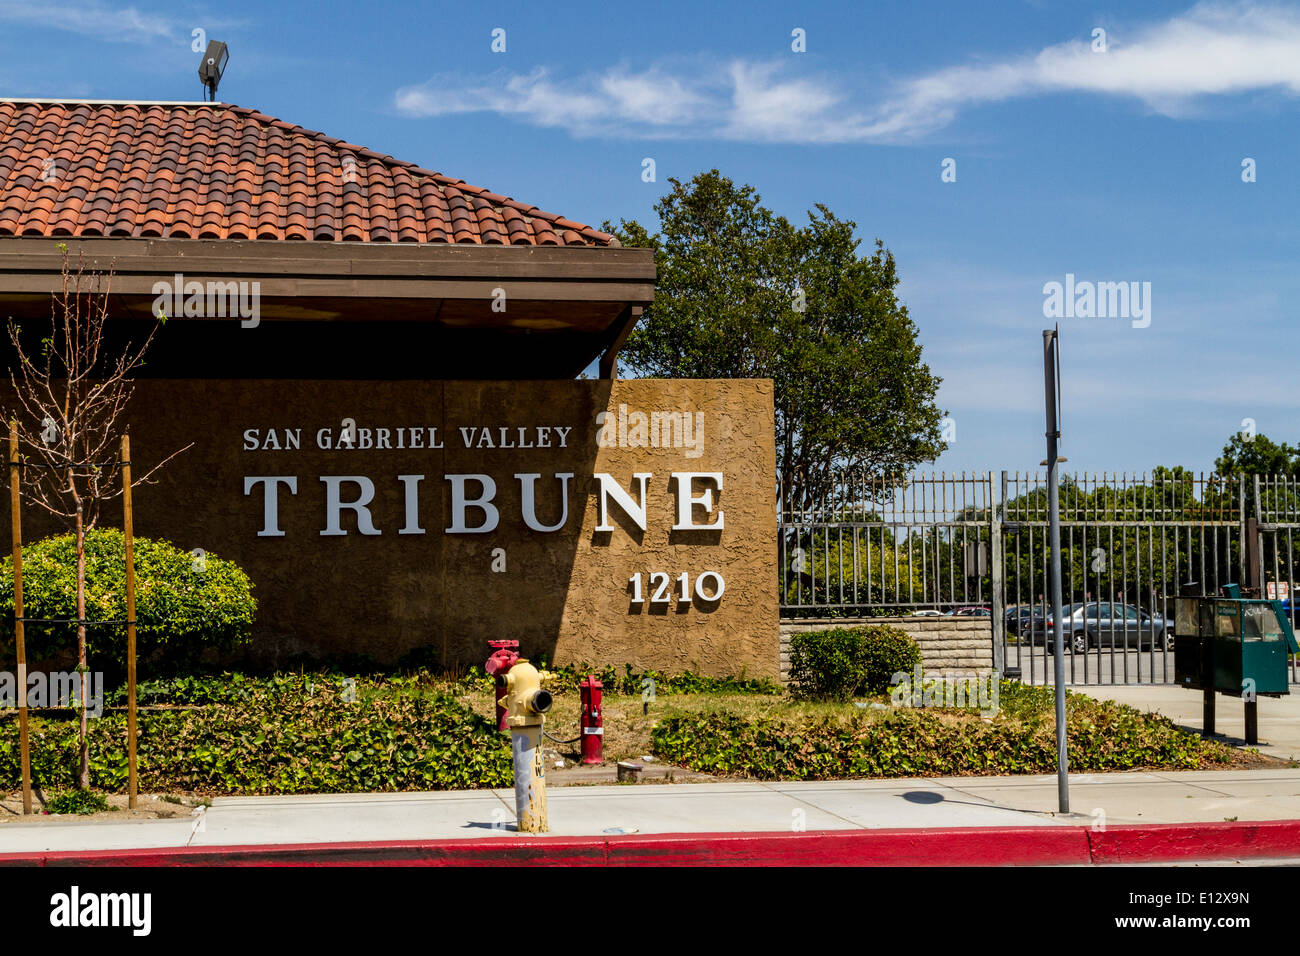 The San Gabriel Valley Tribune Newspaper offices Stock Photo